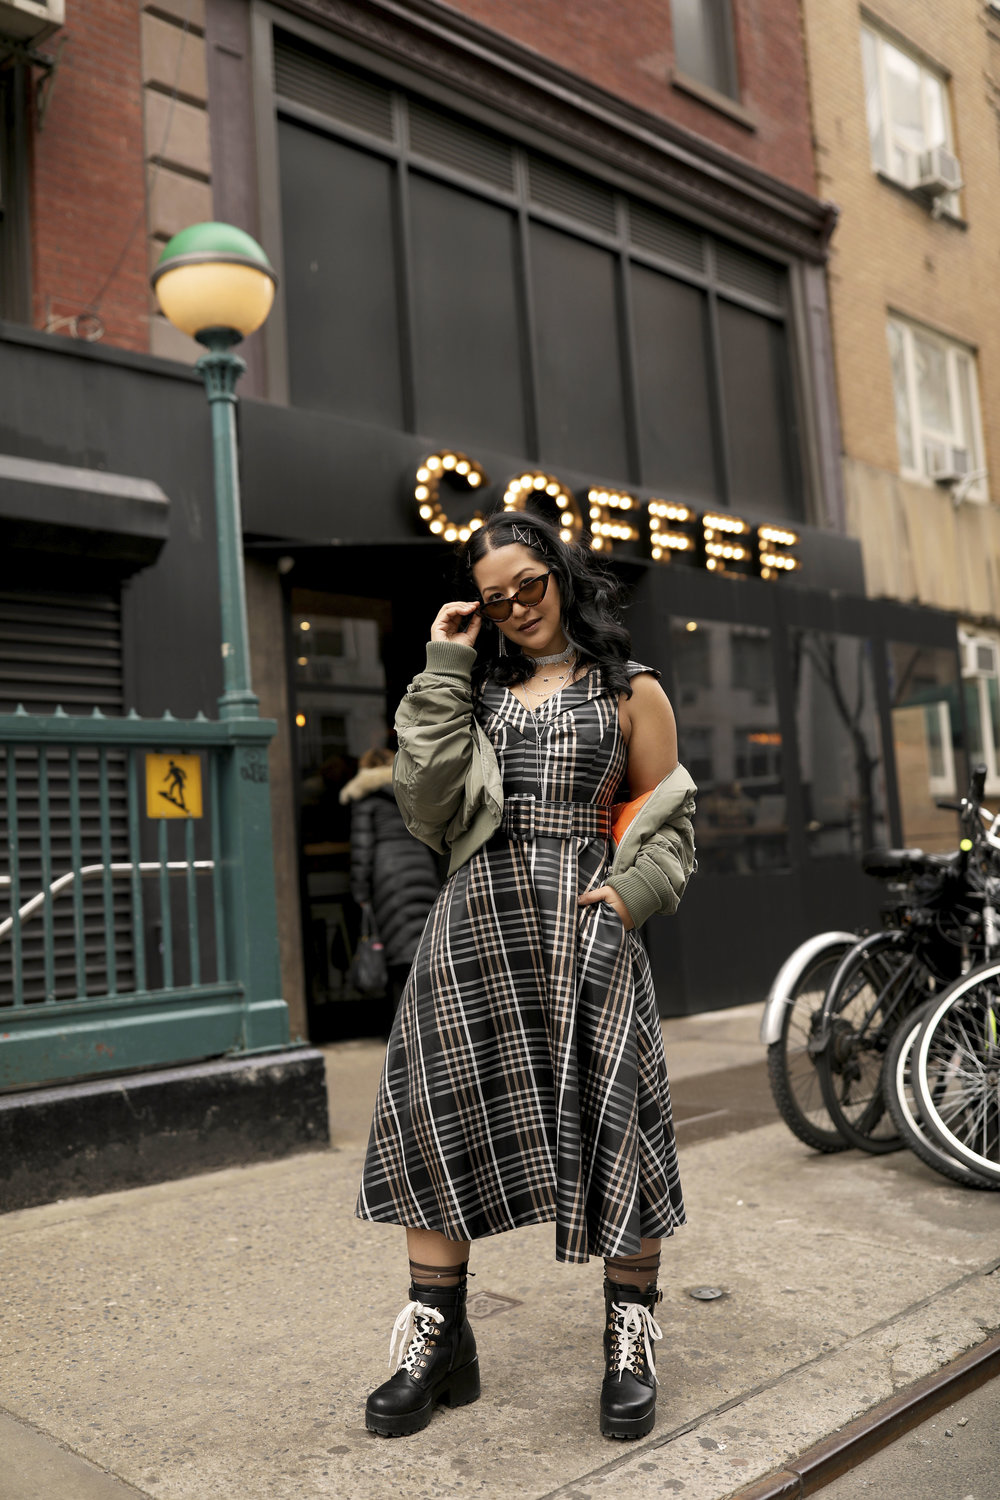 Plaid Dress and Boots_Krity S Blog_2.jpg